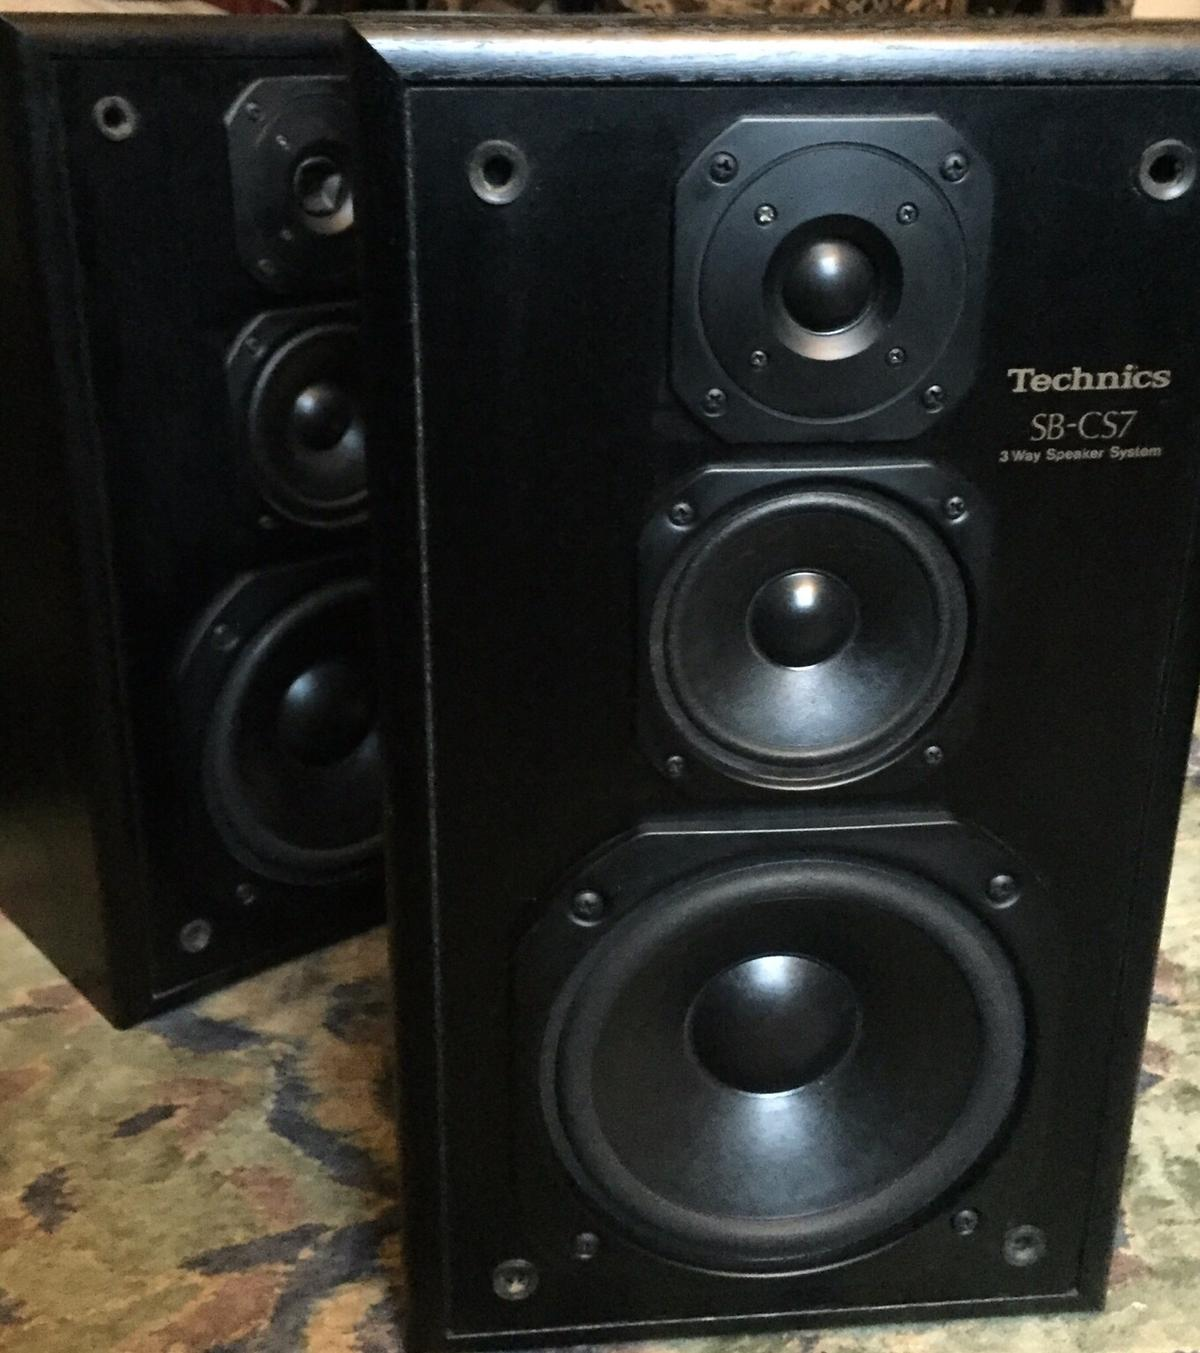 Technics SB C57 Speakers  Good condition and great sounding. In black ash. 3 way speaker system 140watts